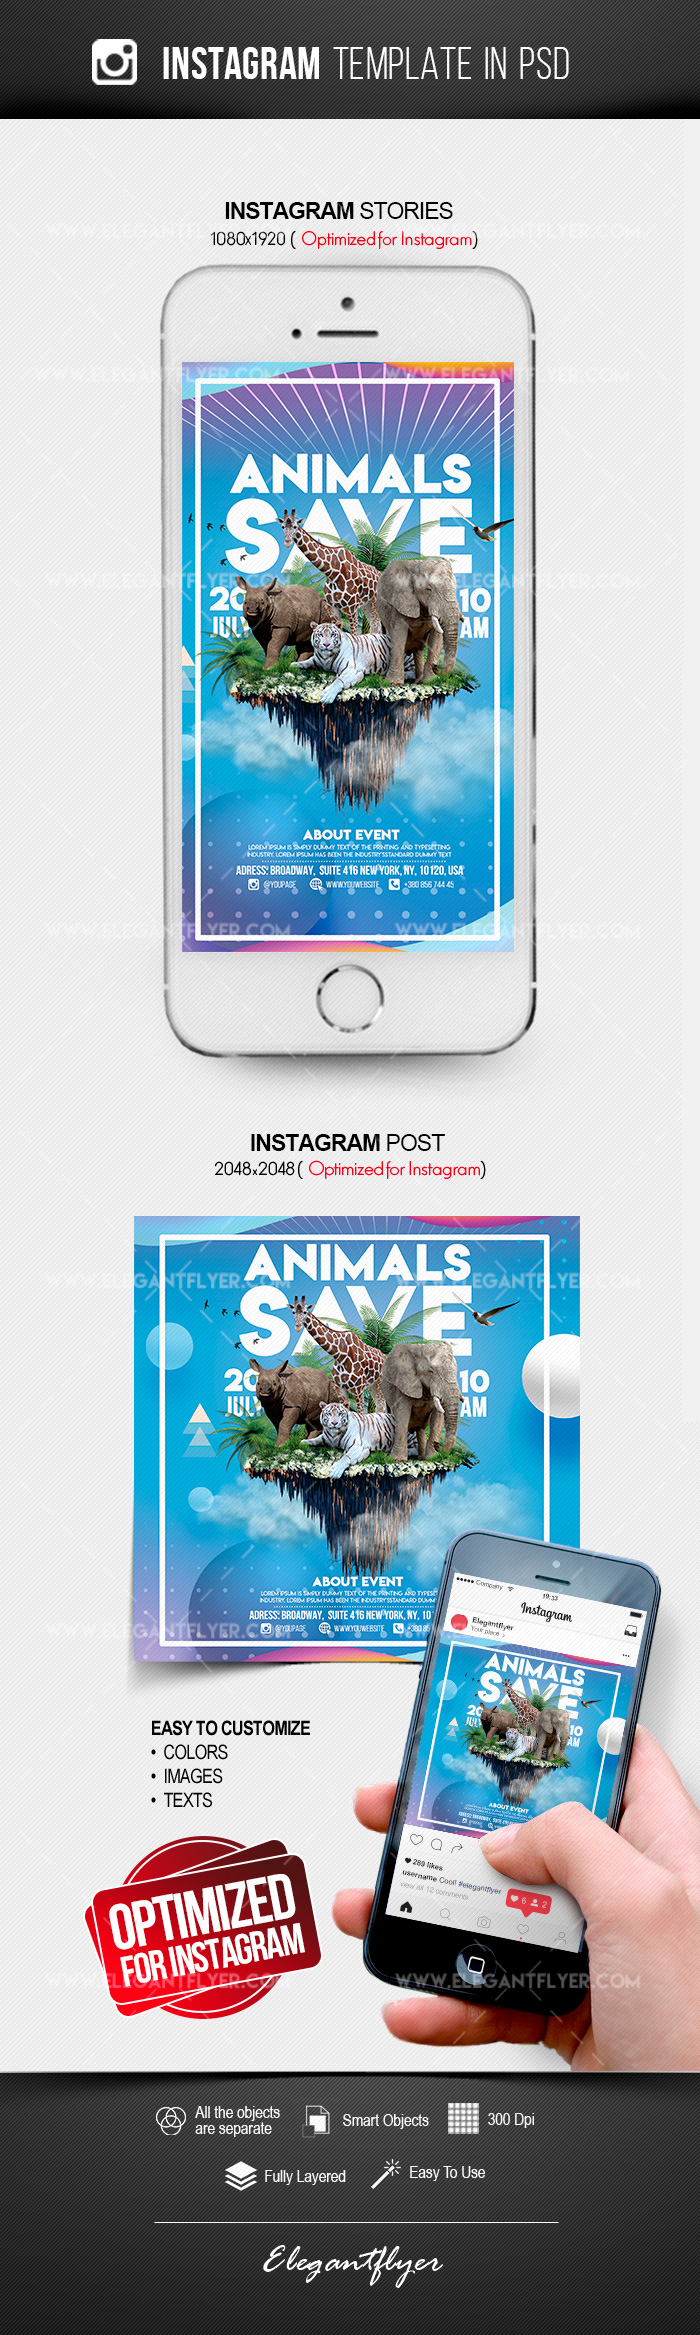 Save the Animals – Instagram Stories Template in PSD + Post Templates